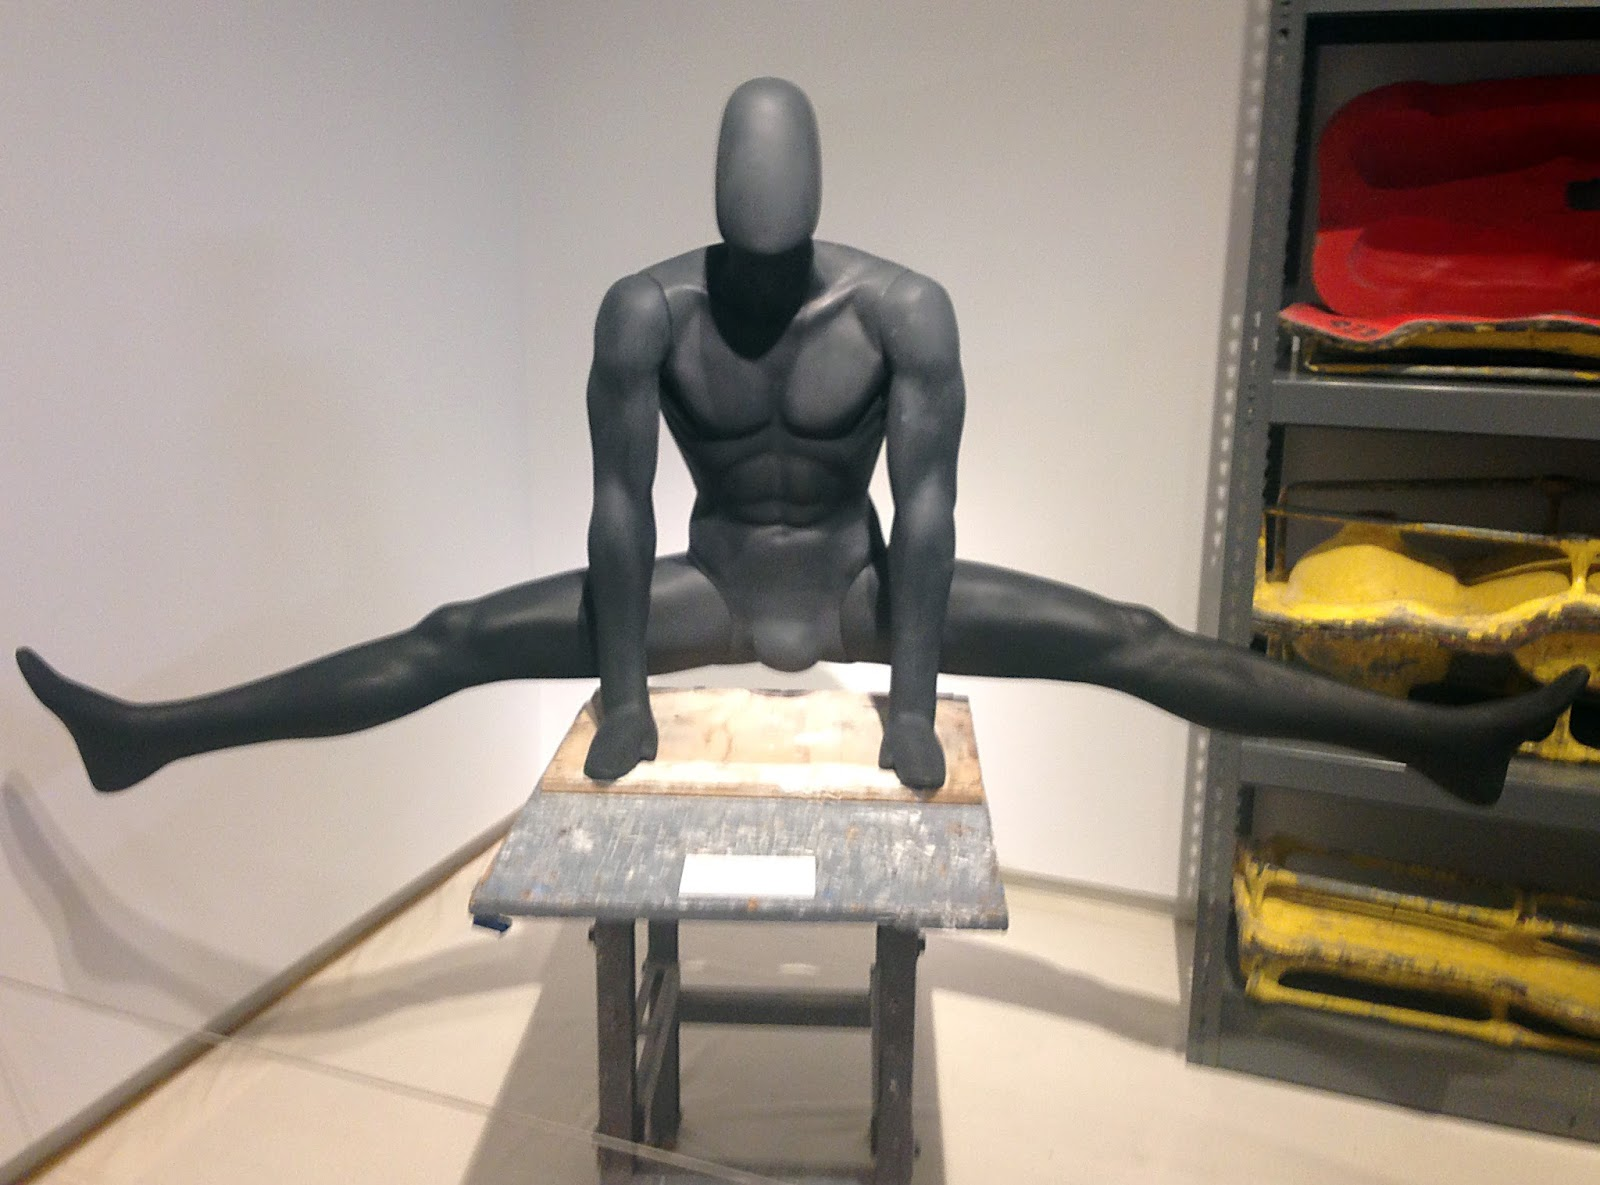 Idiosyncratic Fashionistas: The Making of a Mannequin: MAD